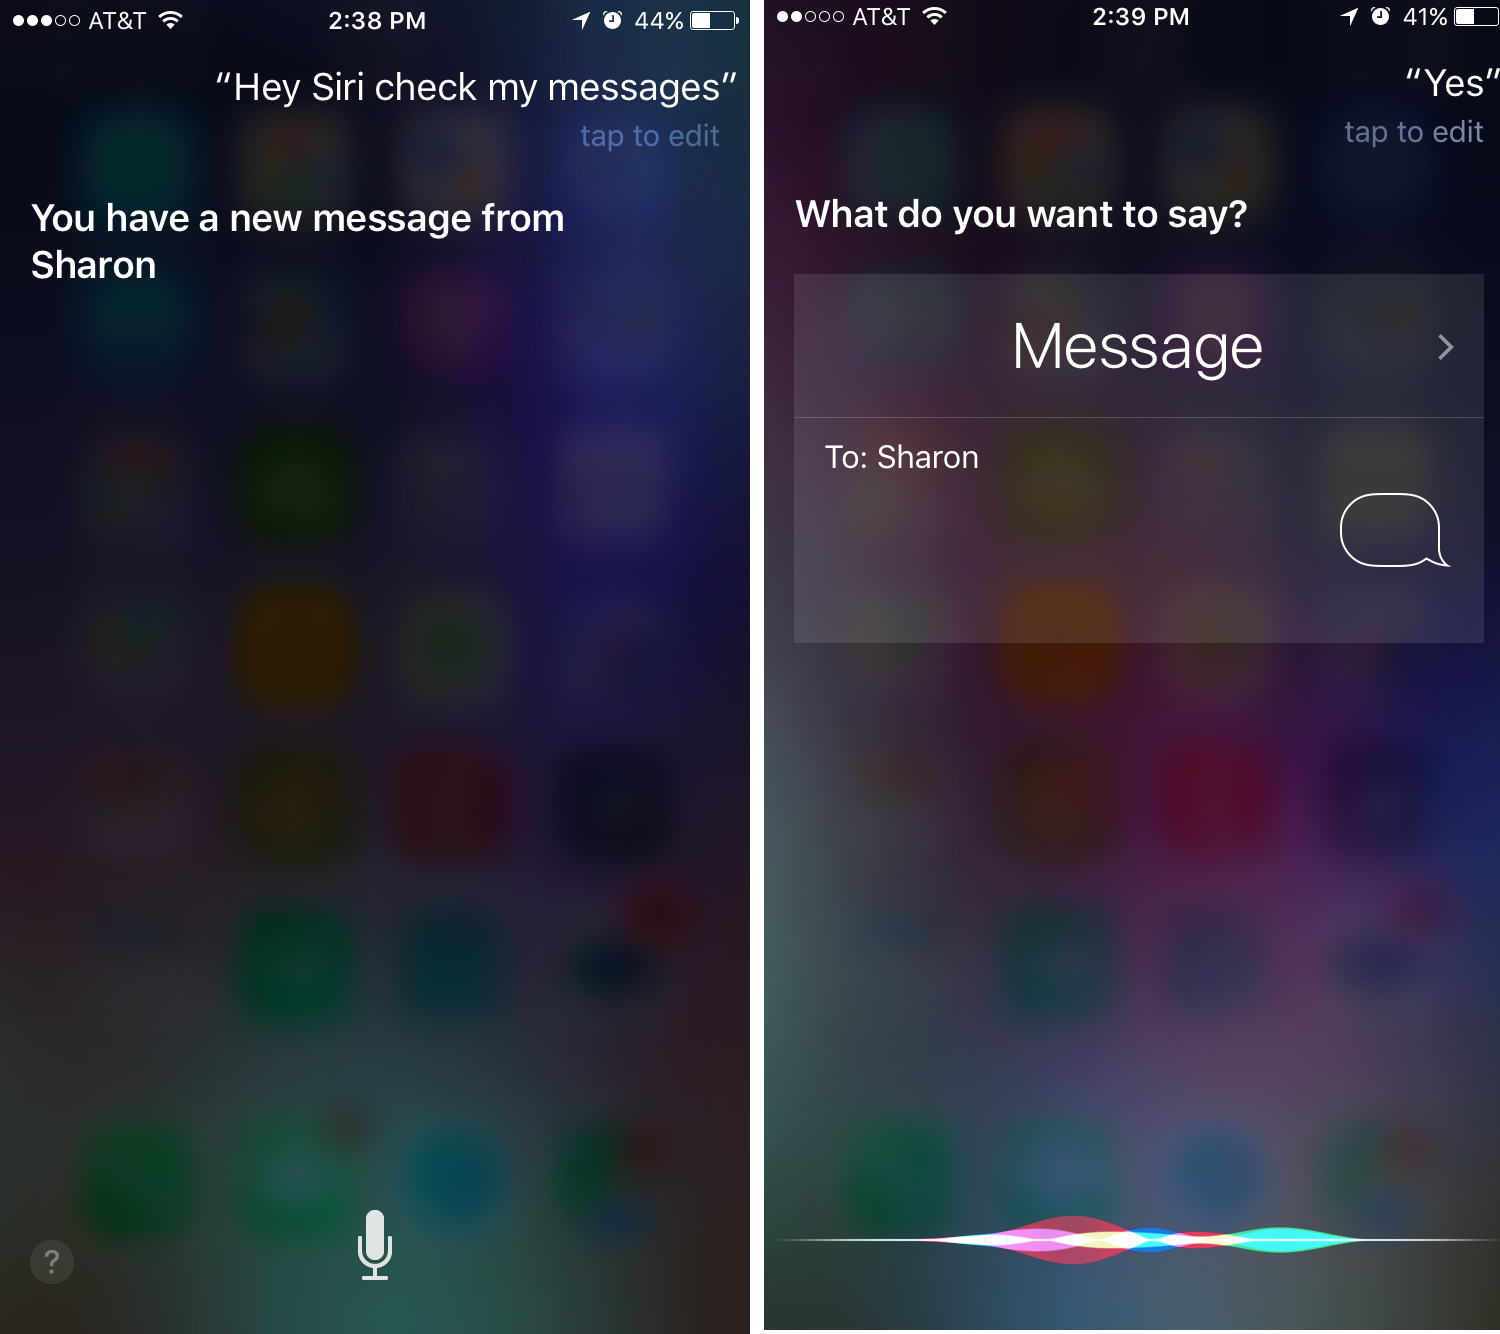 Examples of the screen display shown by Siri while messaging in voice mode